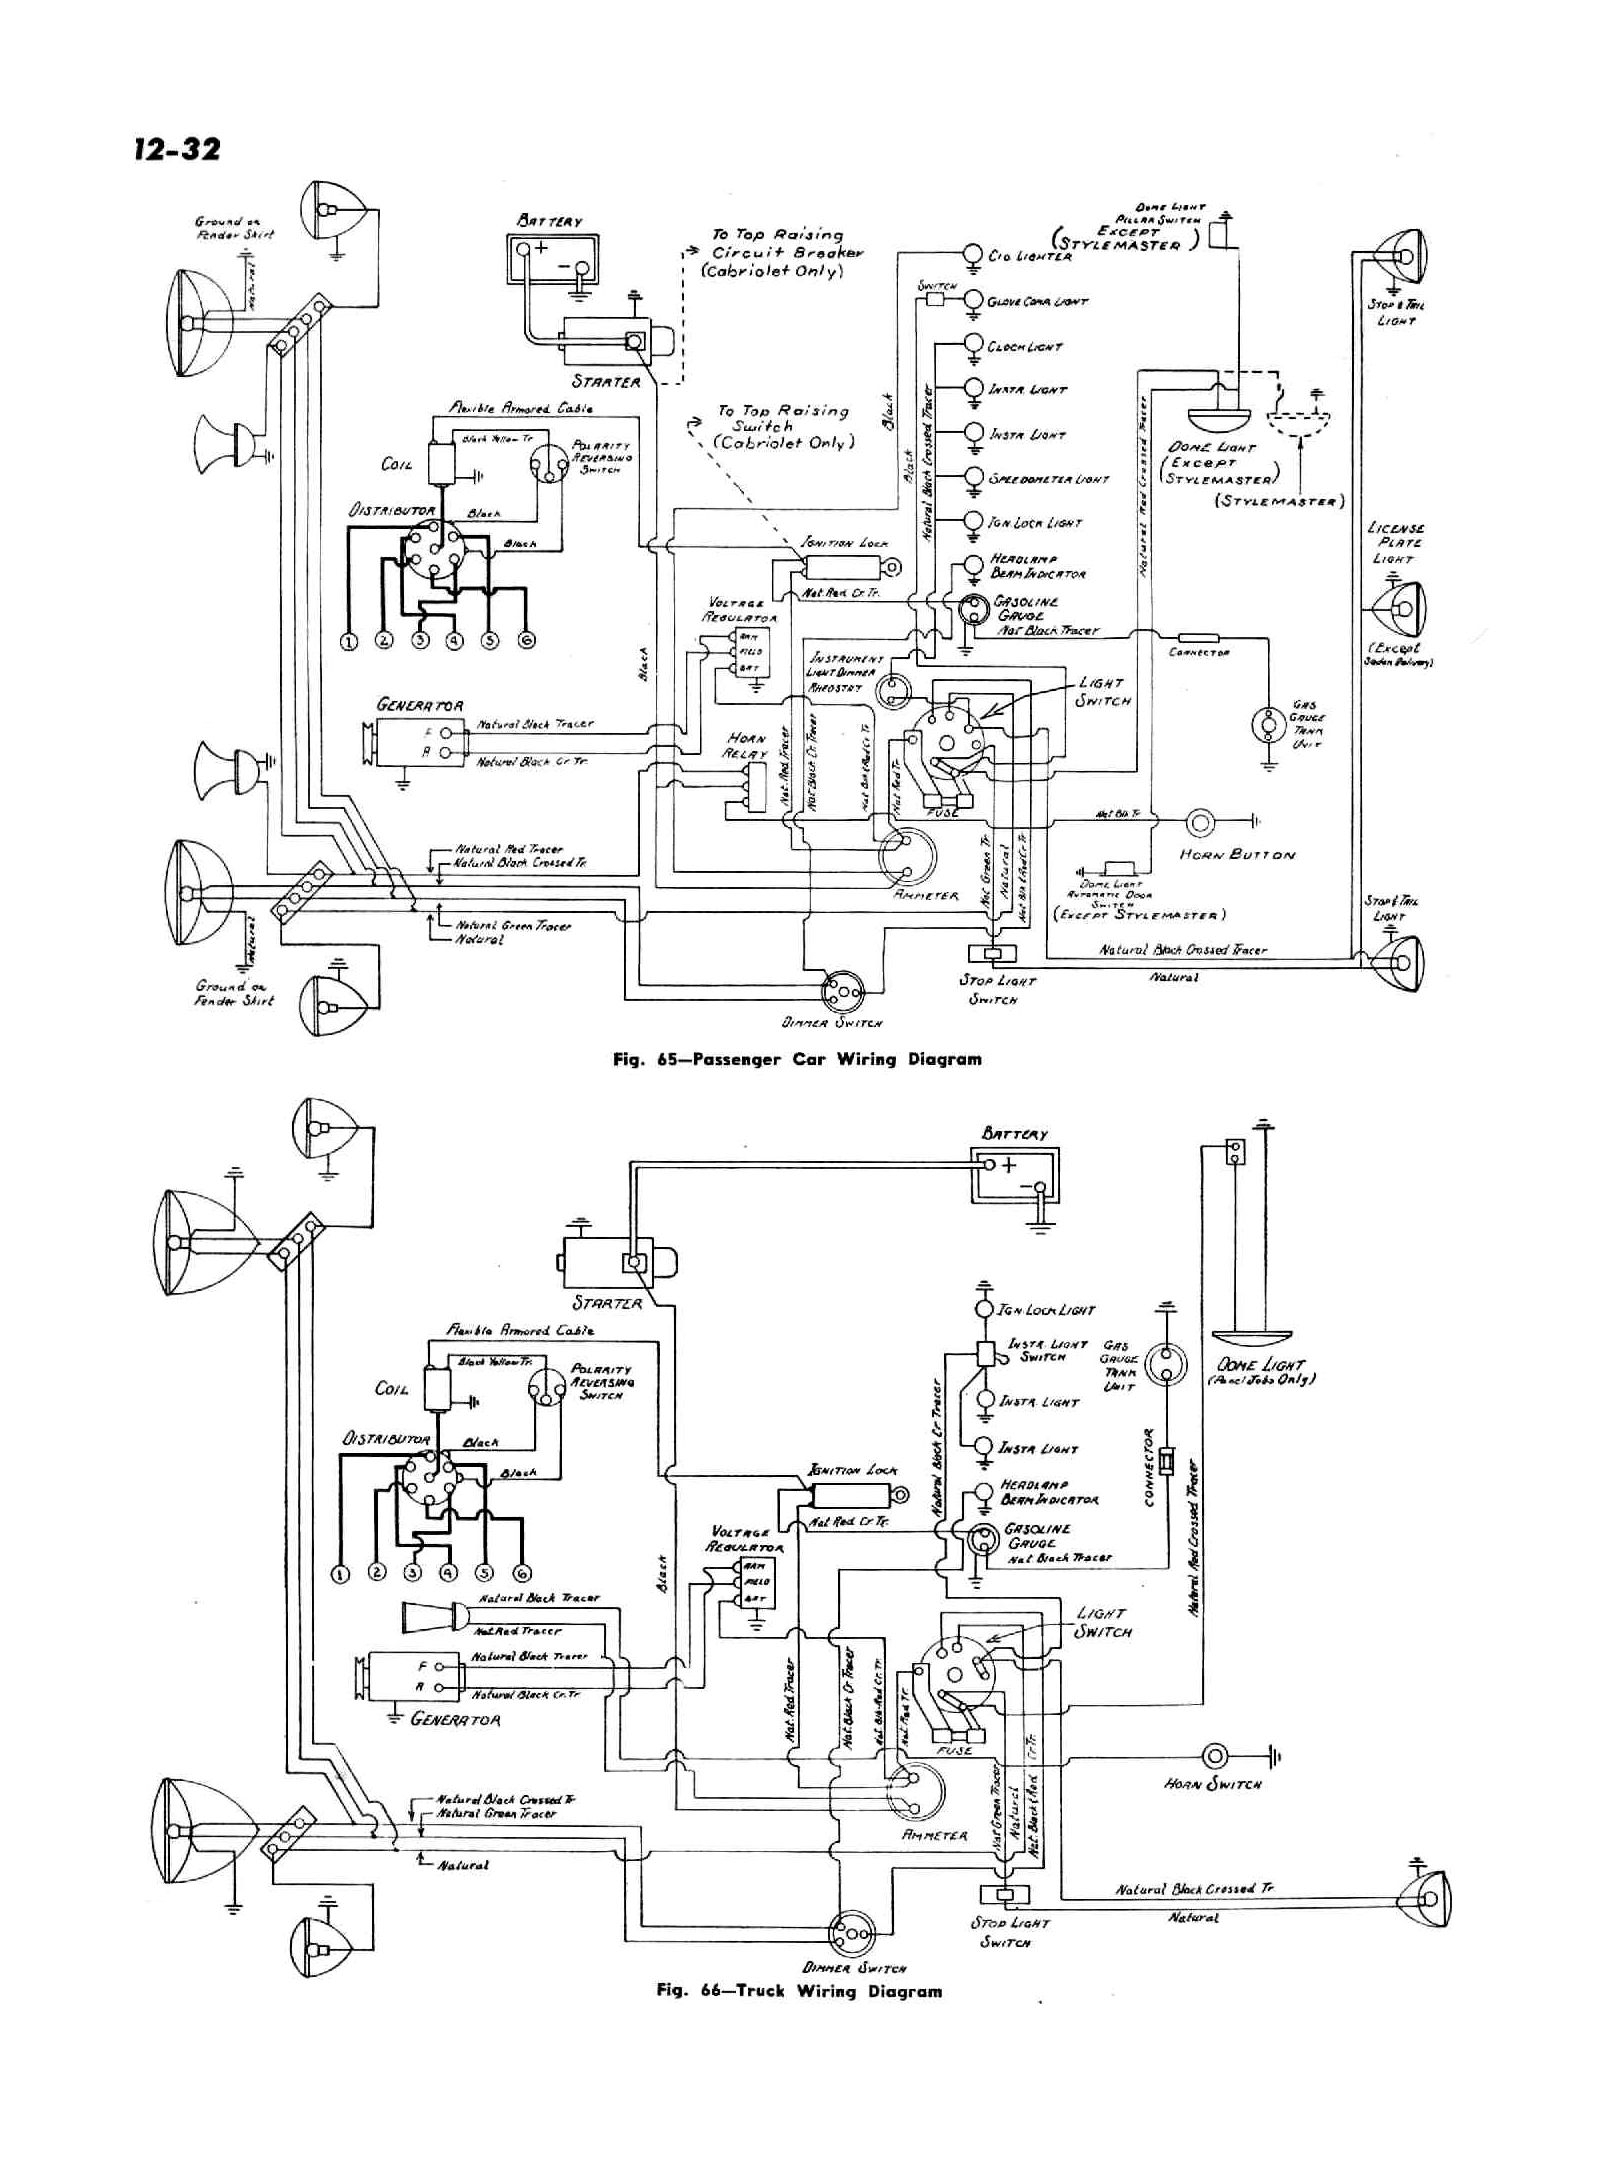 1950 chevy car wiring diagram wiring diagrams update